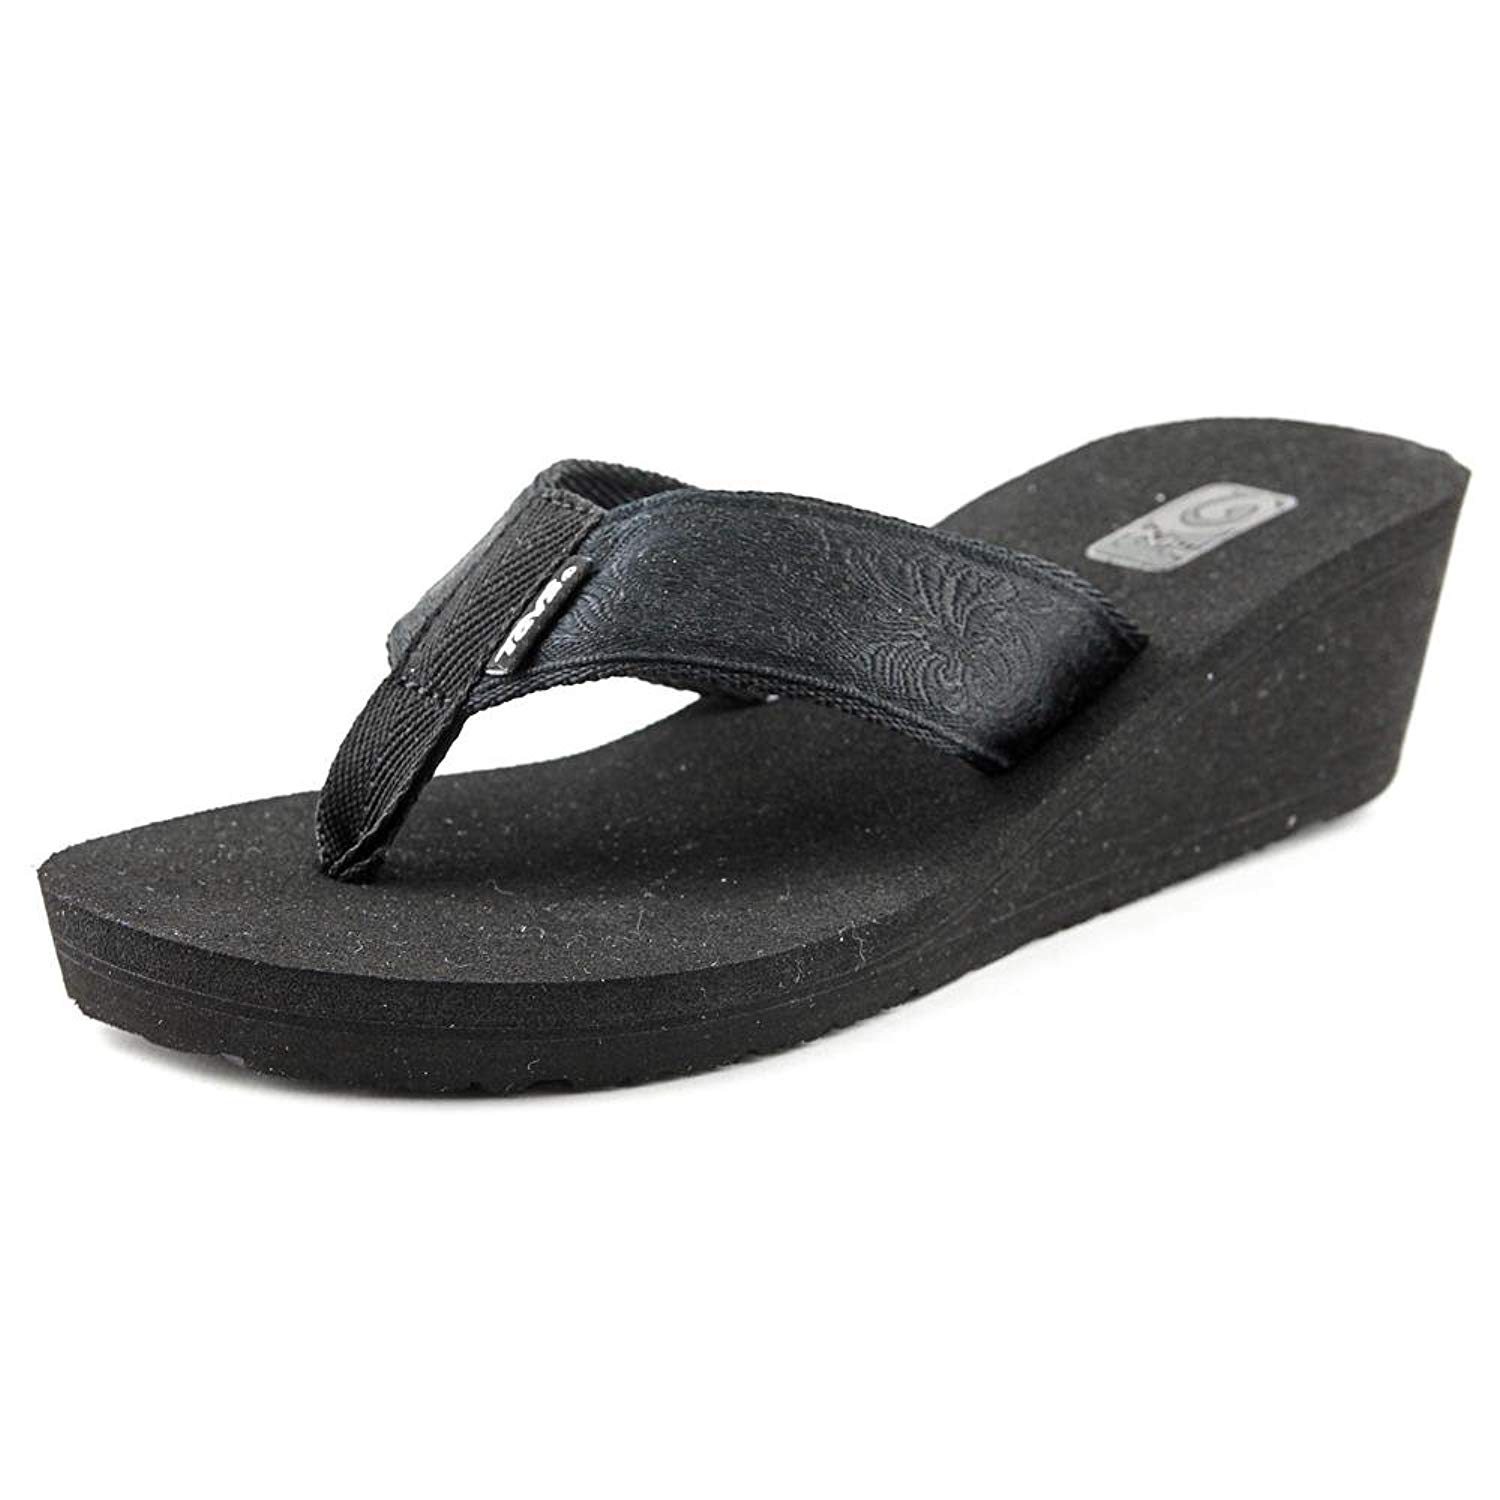 16bc54da2 Get Quotations · Teva Mush Mandalyn Wedge 2 Women US 10 Black Flip Flop  Sandal